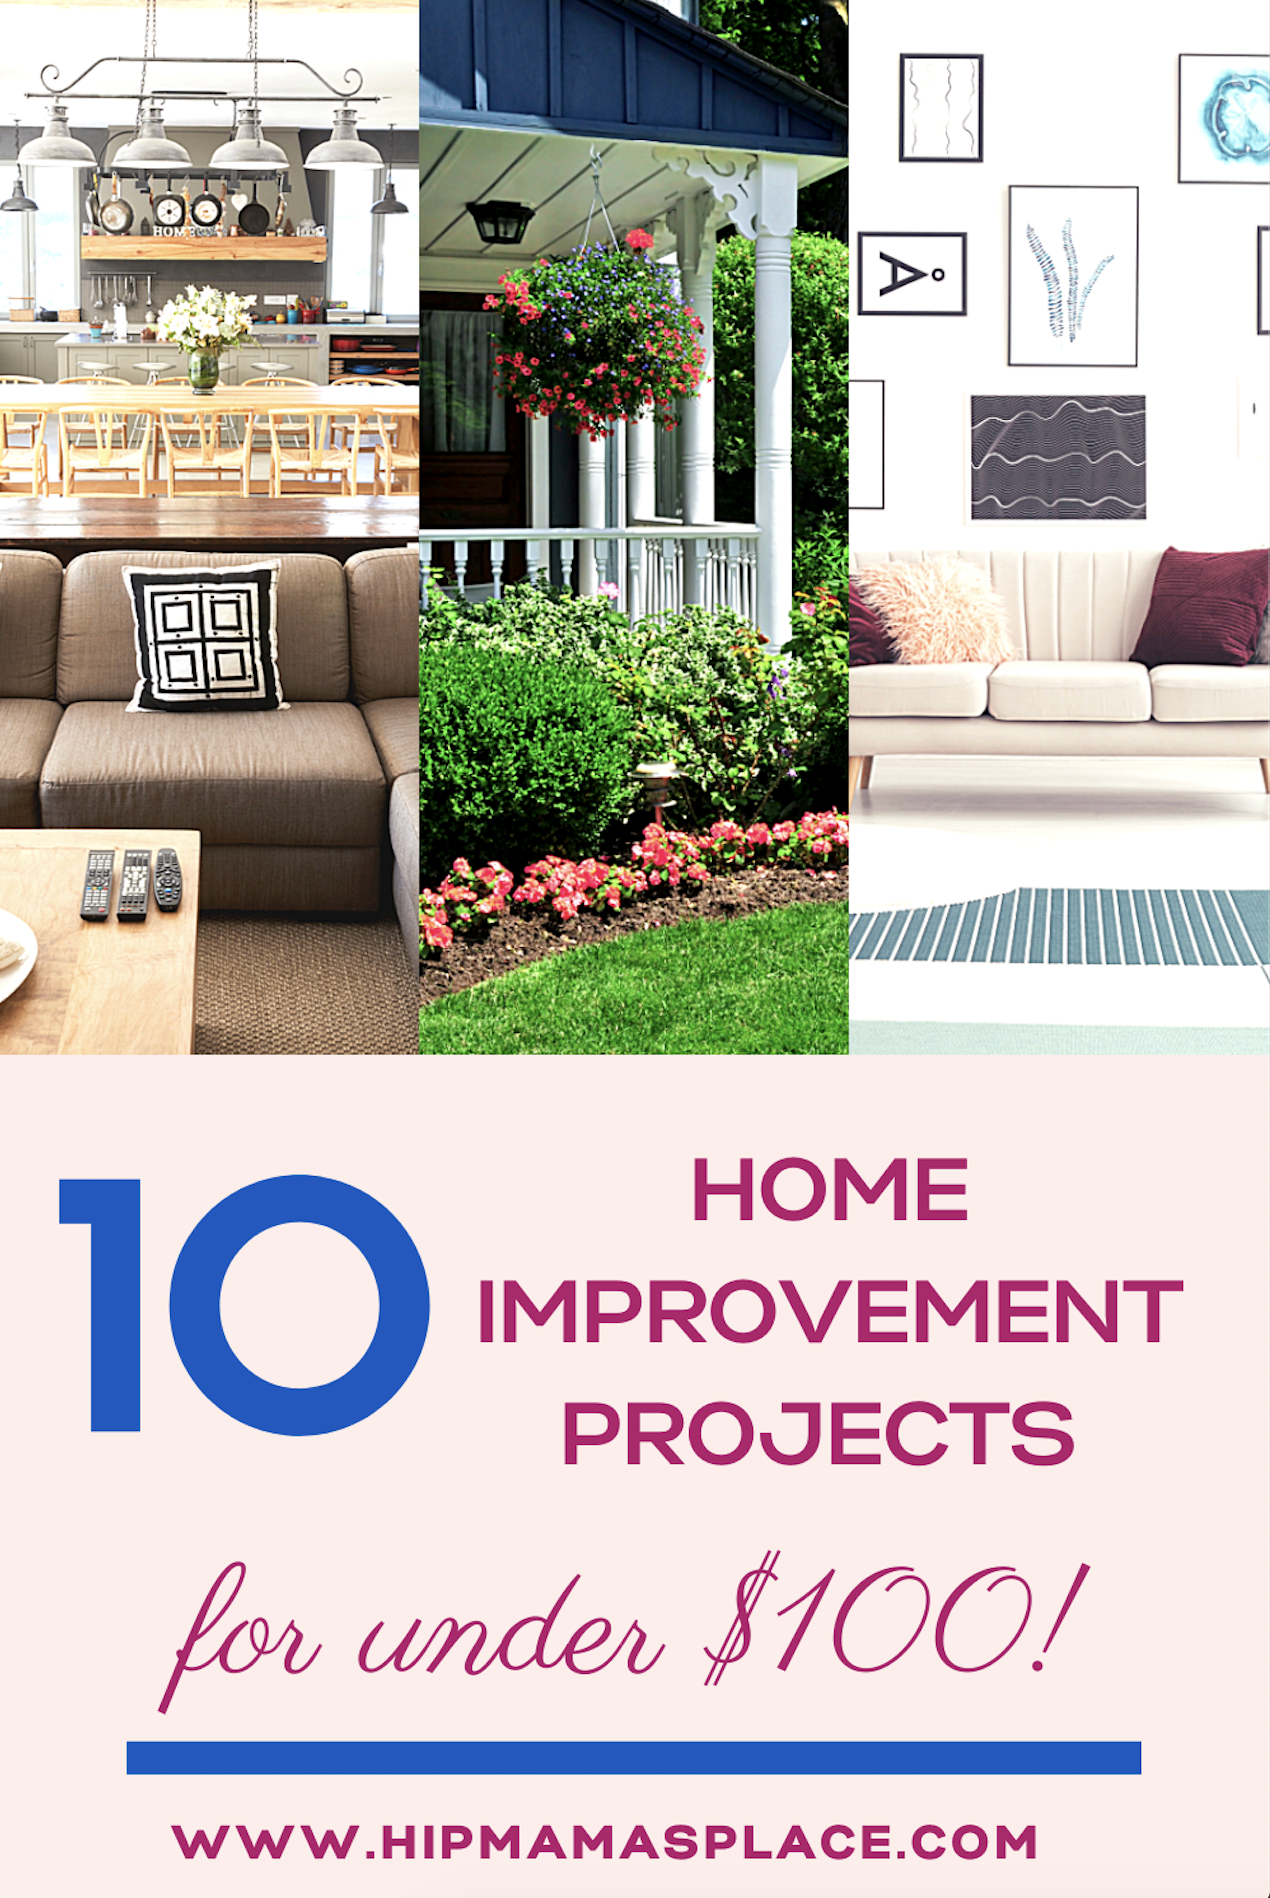 On a tight budget or just don\'t want to spend money on a full home renovation? Read on for 10 home improvement projects you can do for under $100! #homeimprovement #budgetdecor #budgethomeimprovement #diy #diyonabudget #homedecor